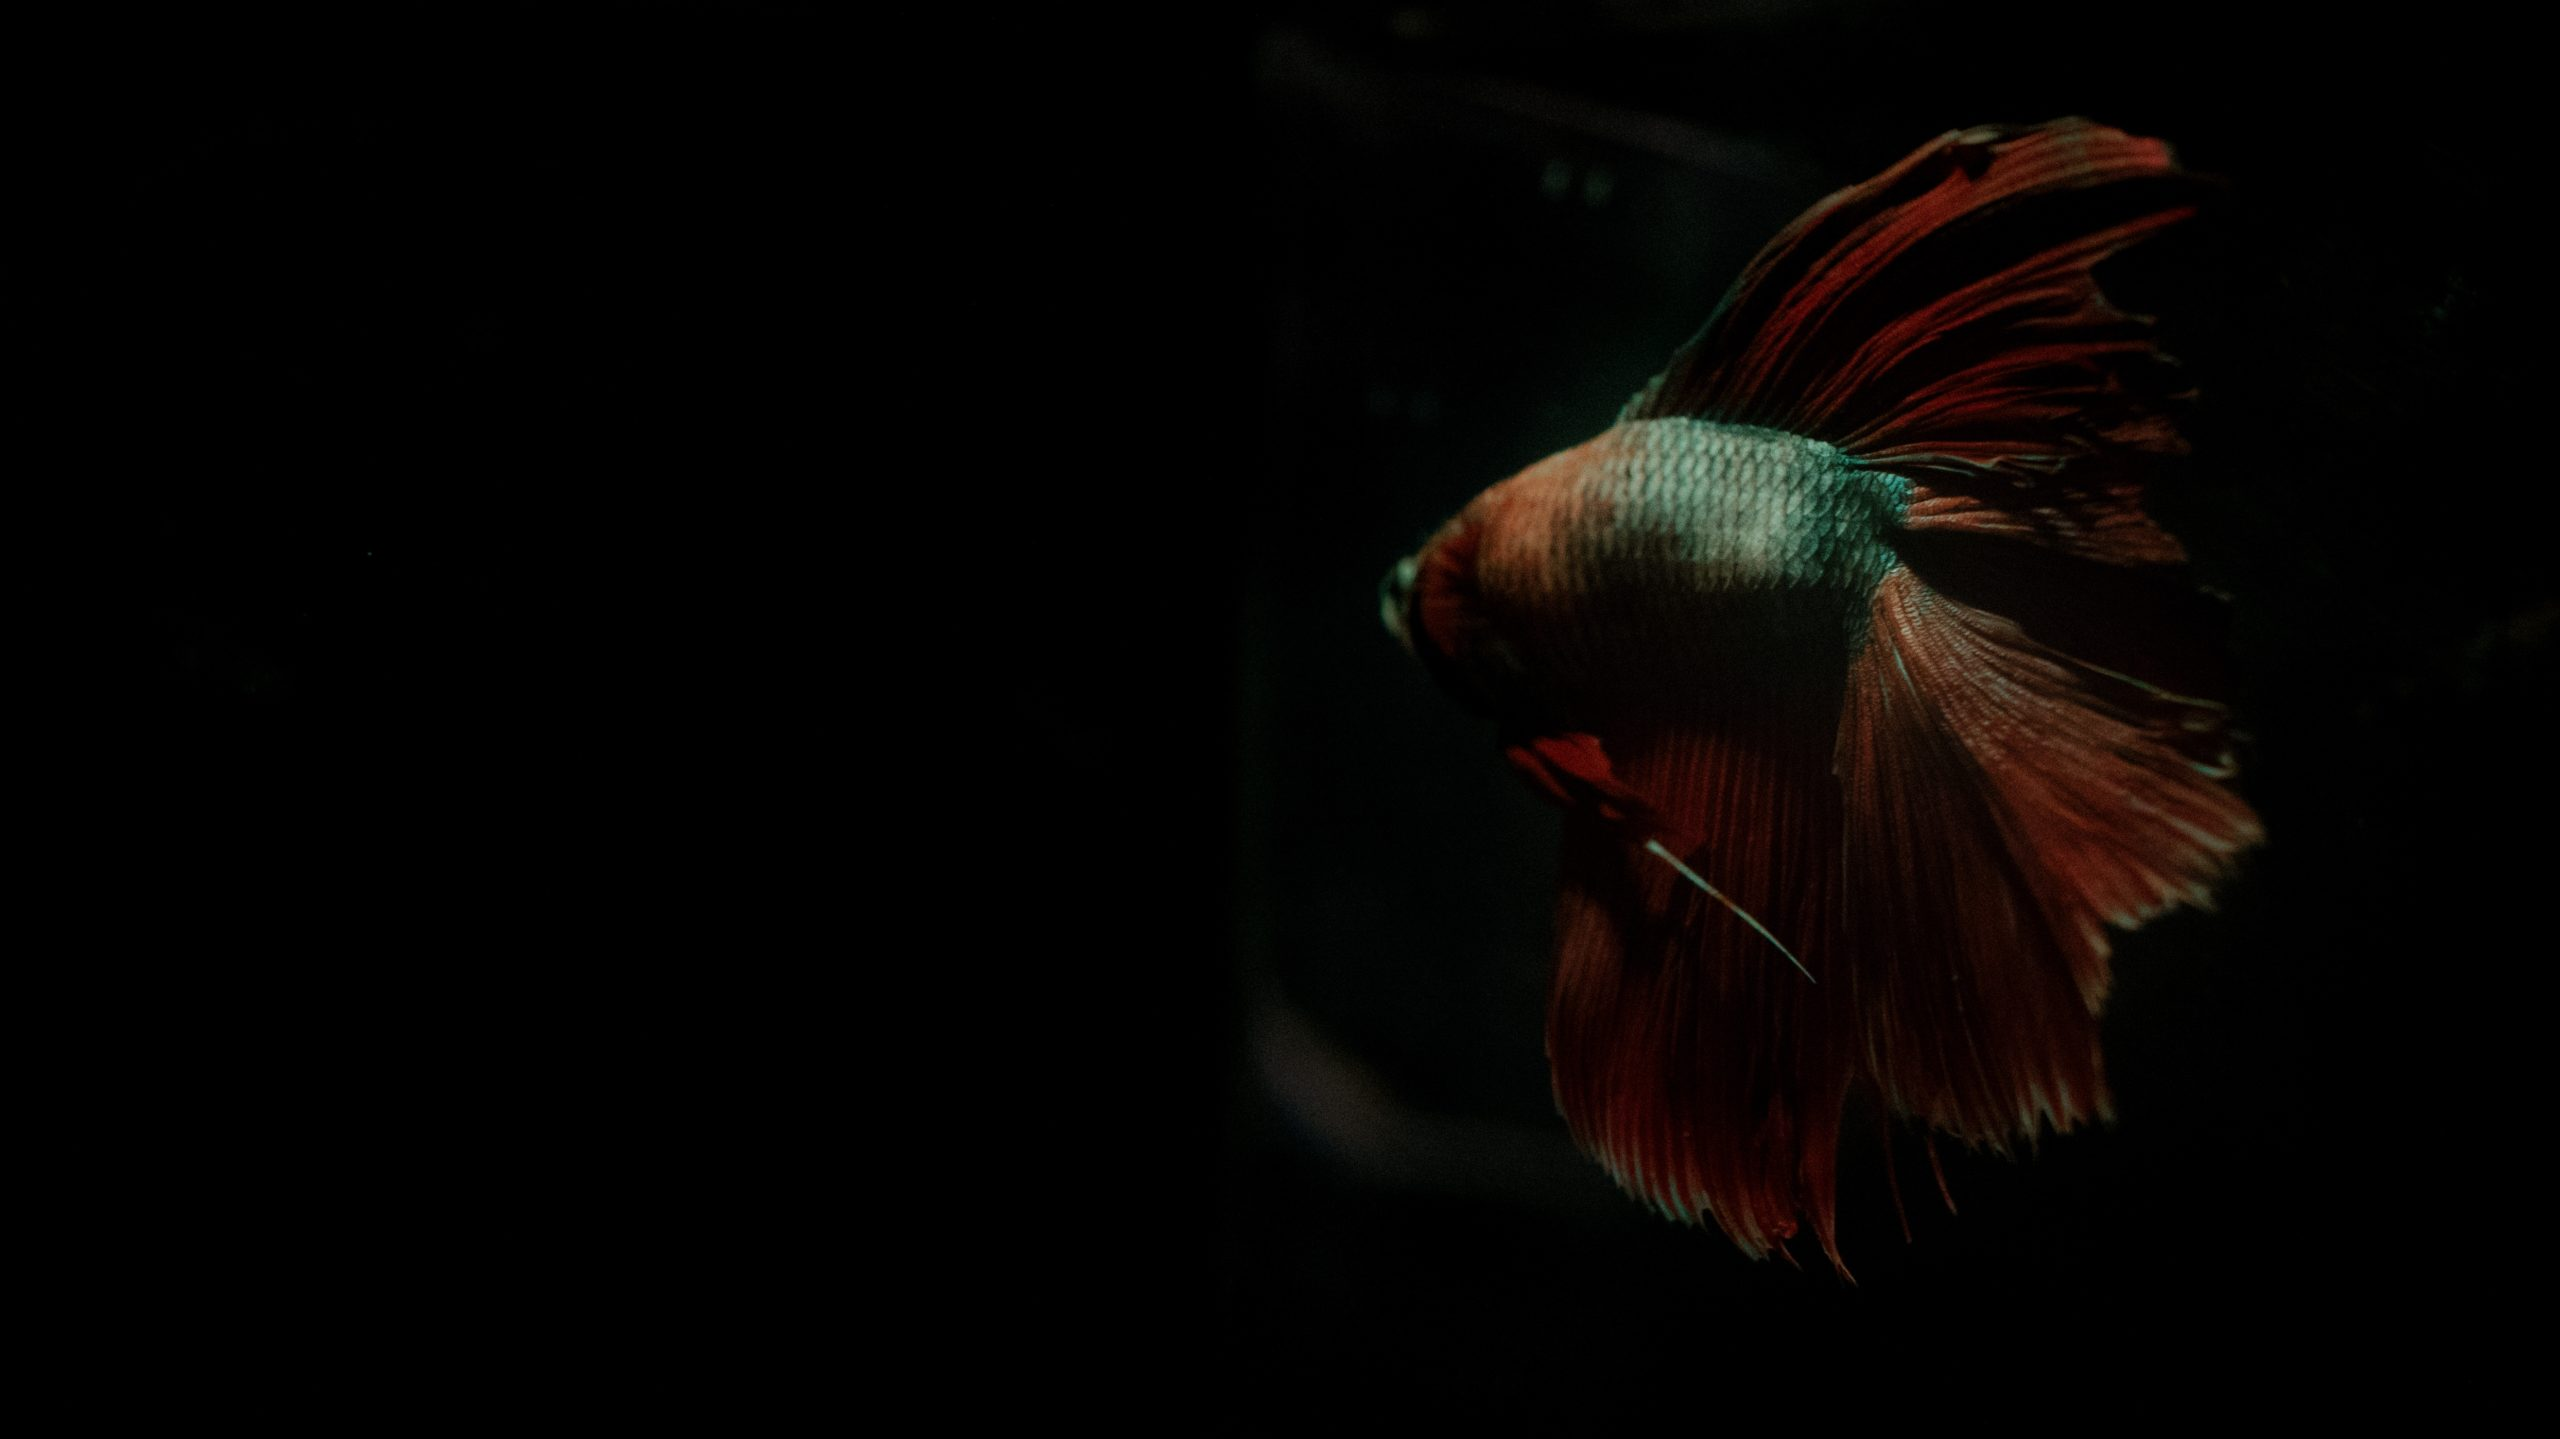 a lonely betta fish sailing off into the dark, set to Sober by Tool